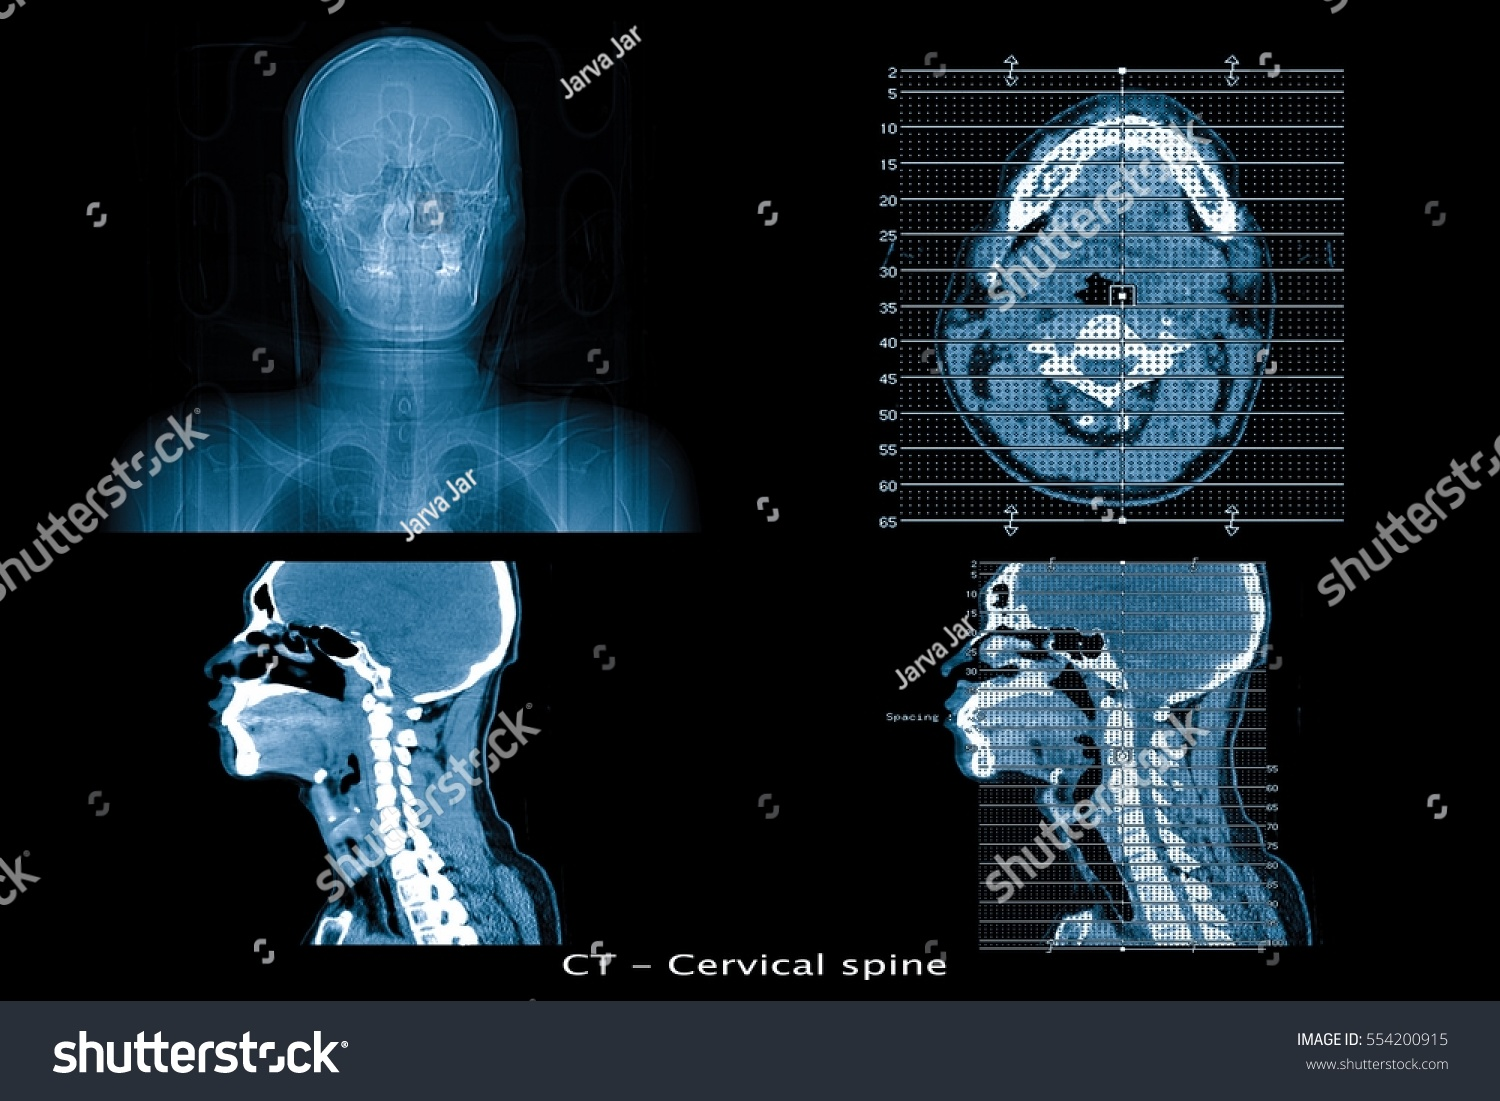 CT Scan Image Show Cervical Spine Stock Photo (100% Legal Protection ...